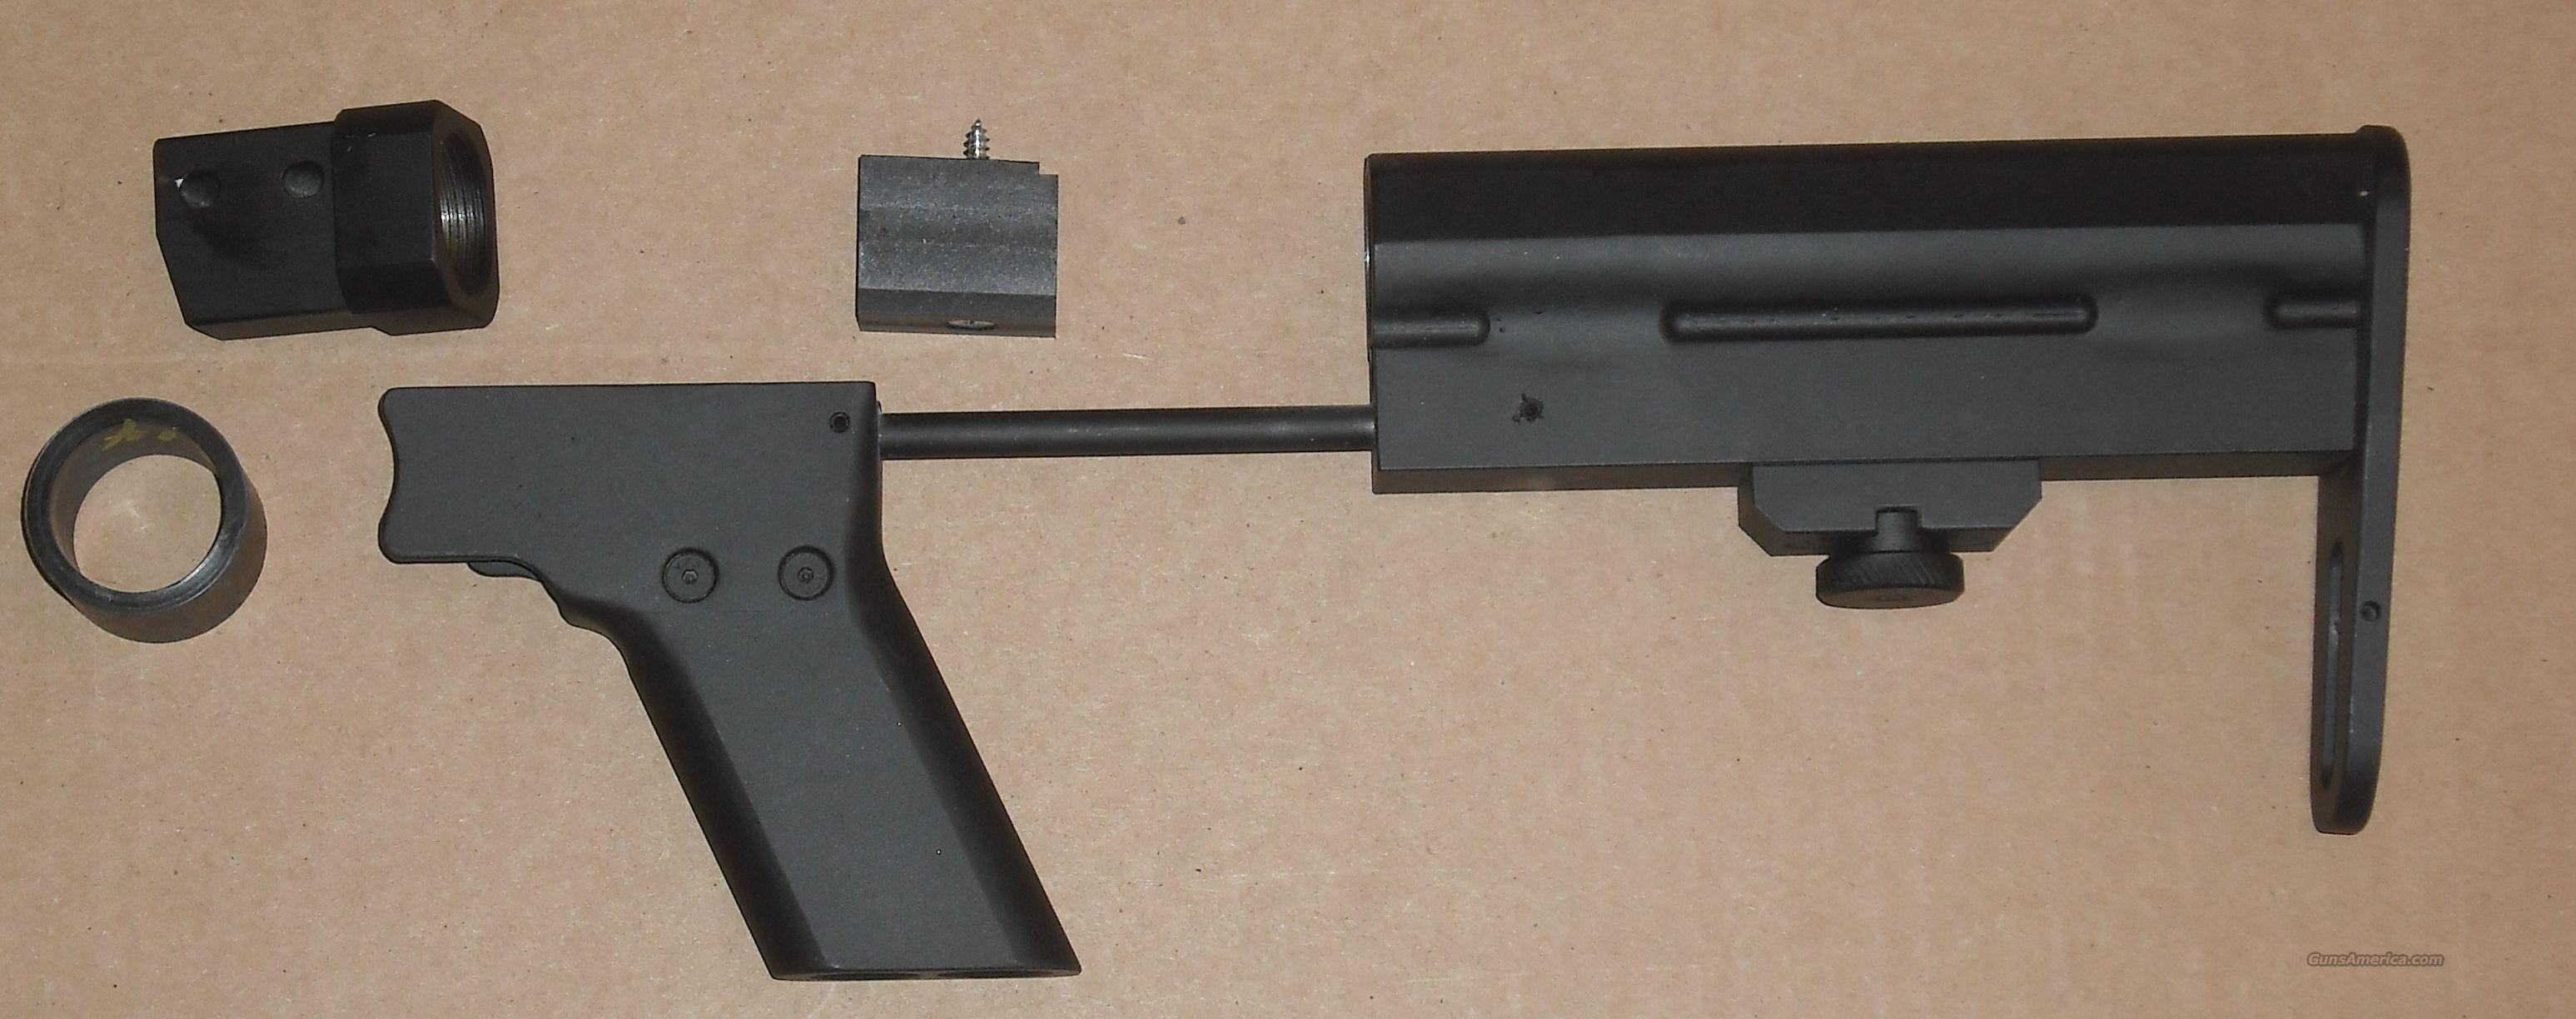 Mini-14/30 Bump Fire stock system in kit form  Guns > Rifles > Ruger Rifles > Mini-14 Type